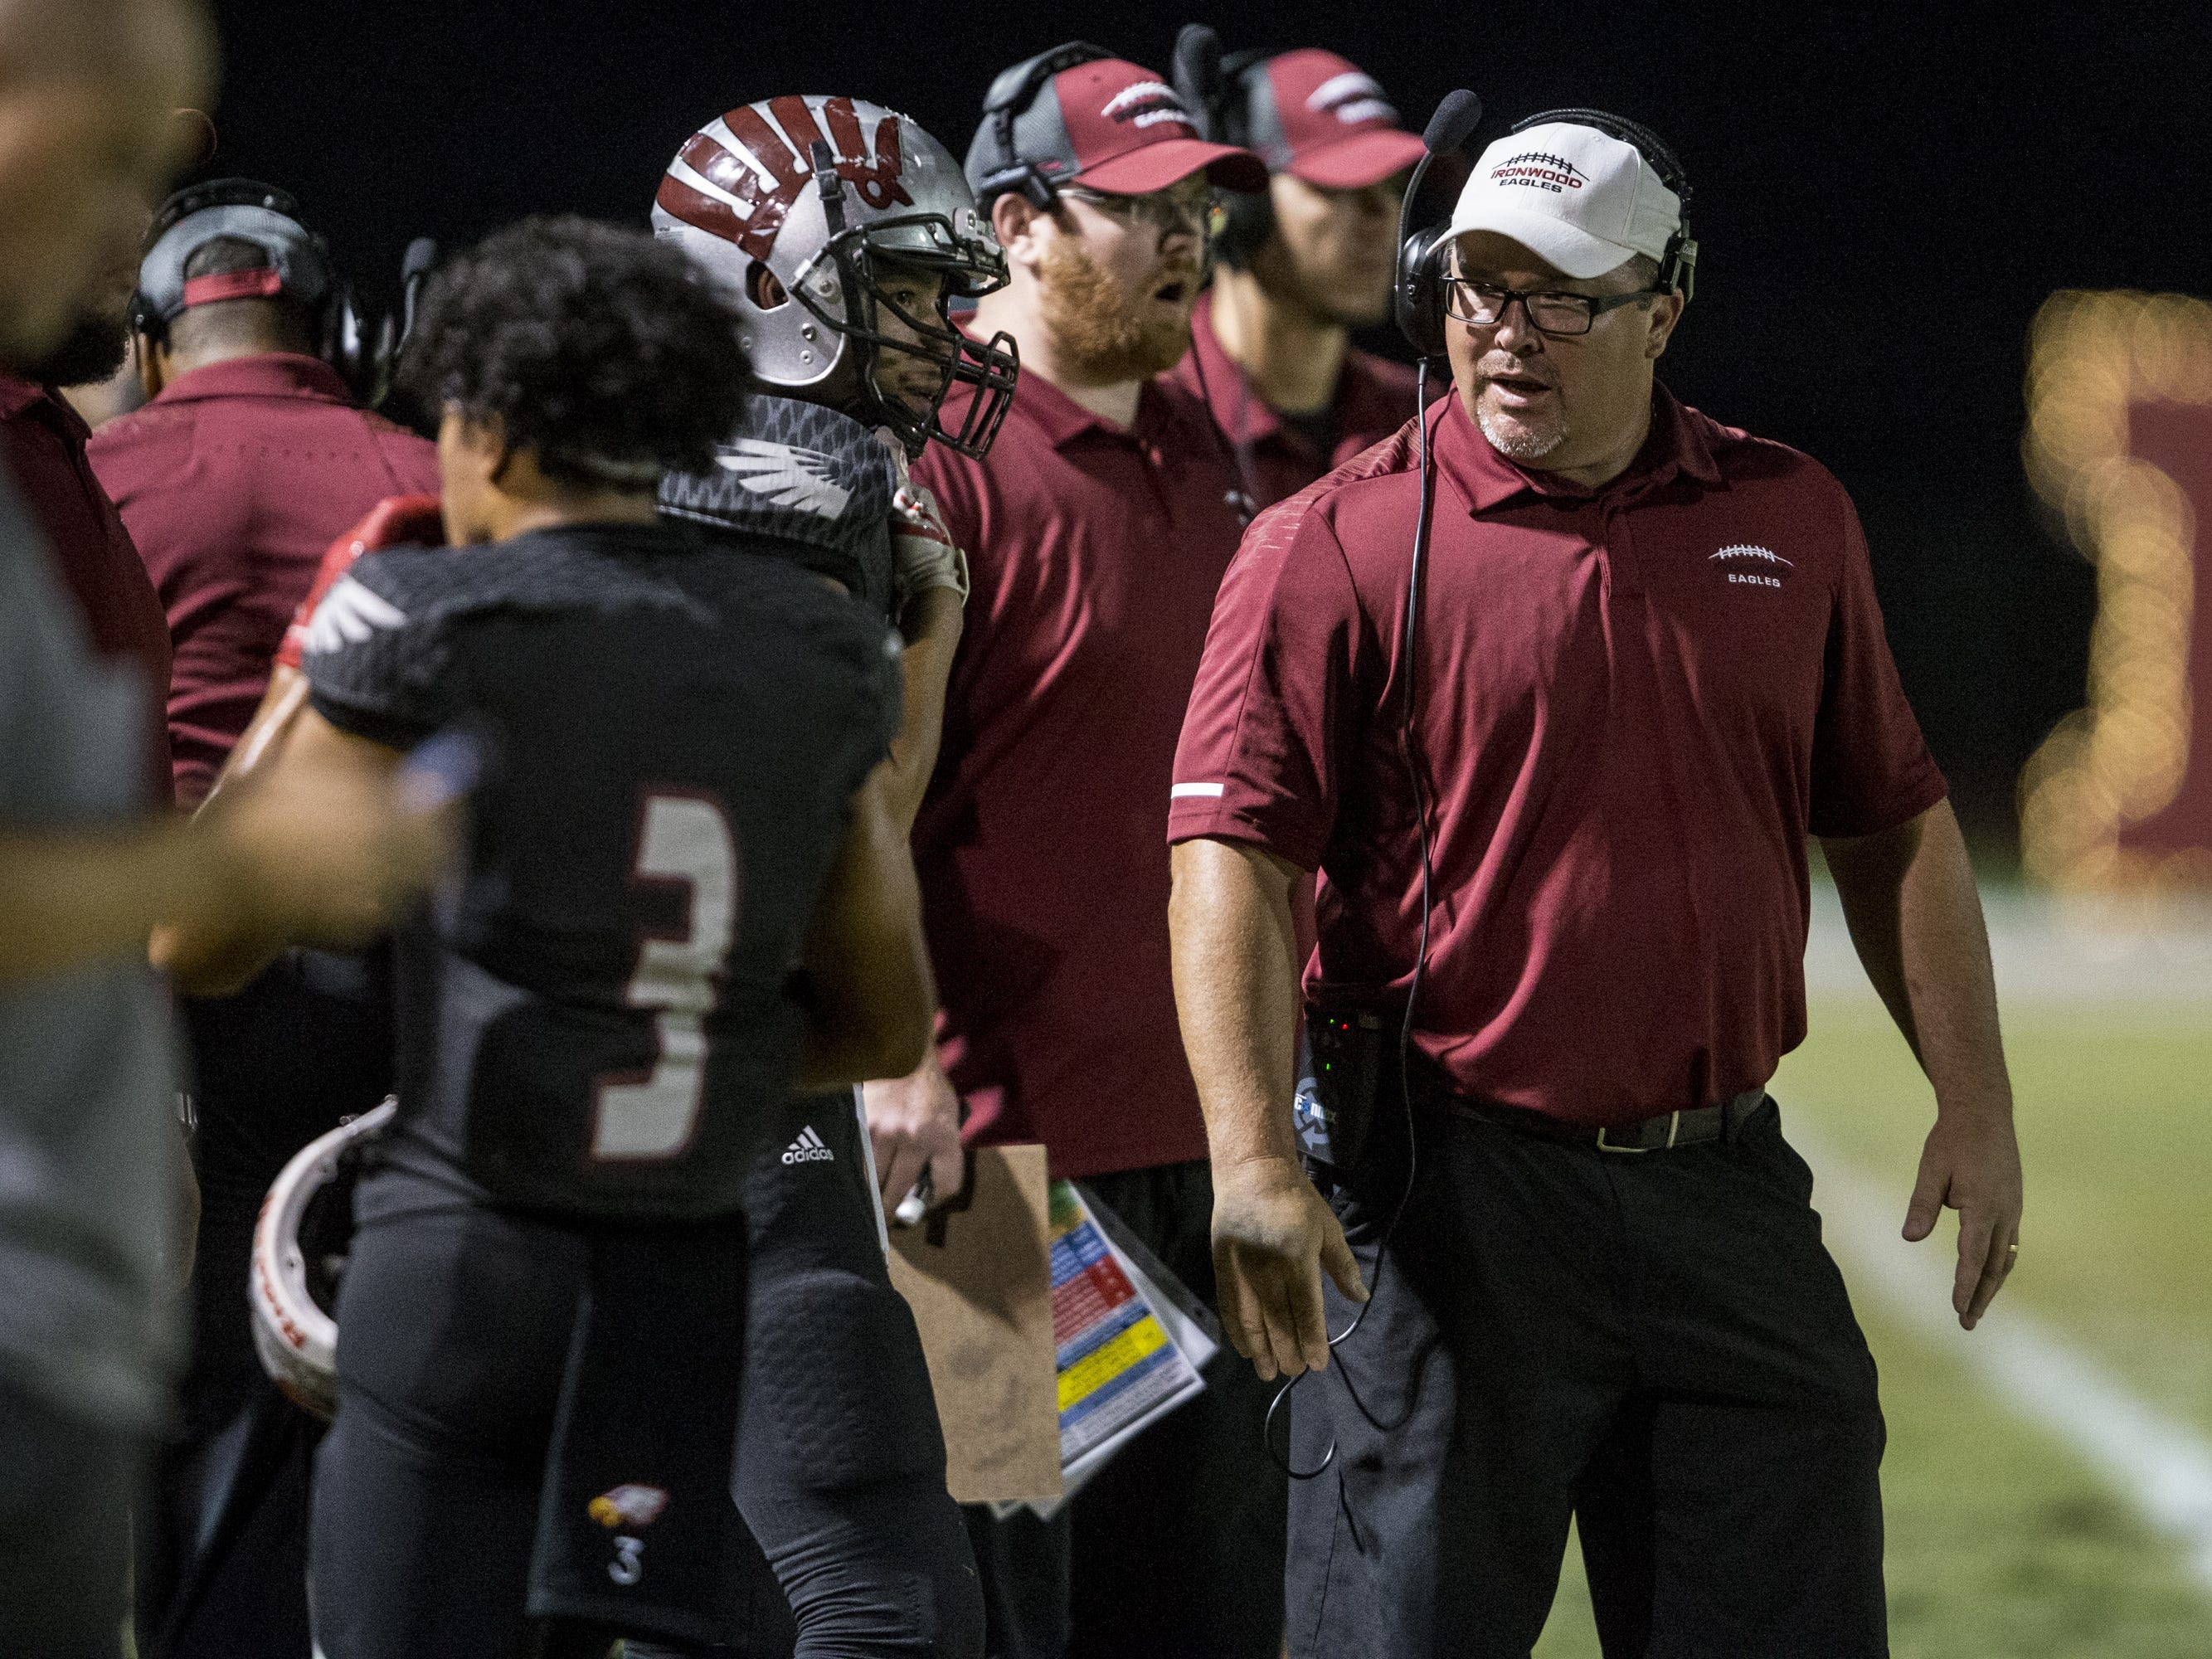 Ironwood head coach Ian Curtis talks to players during the game against Sunrise Mountain on Friday, Sept. 28, 2018, at Ironwood High School in Glendale, Ariz.  #azhsfb